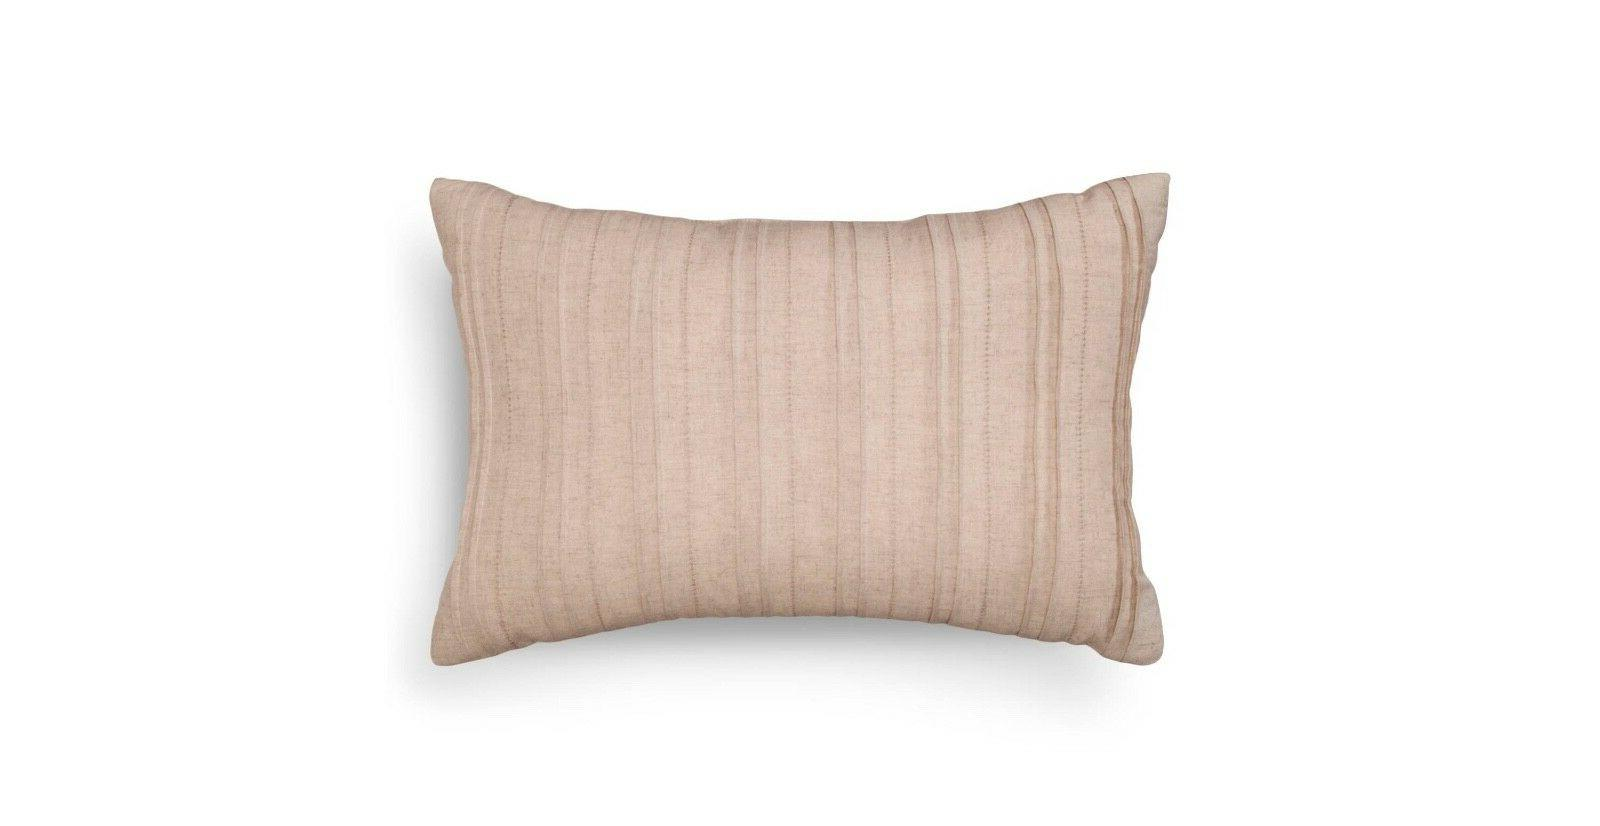 Natural Washed Linen Oblong Throw Pillow  - Threshold